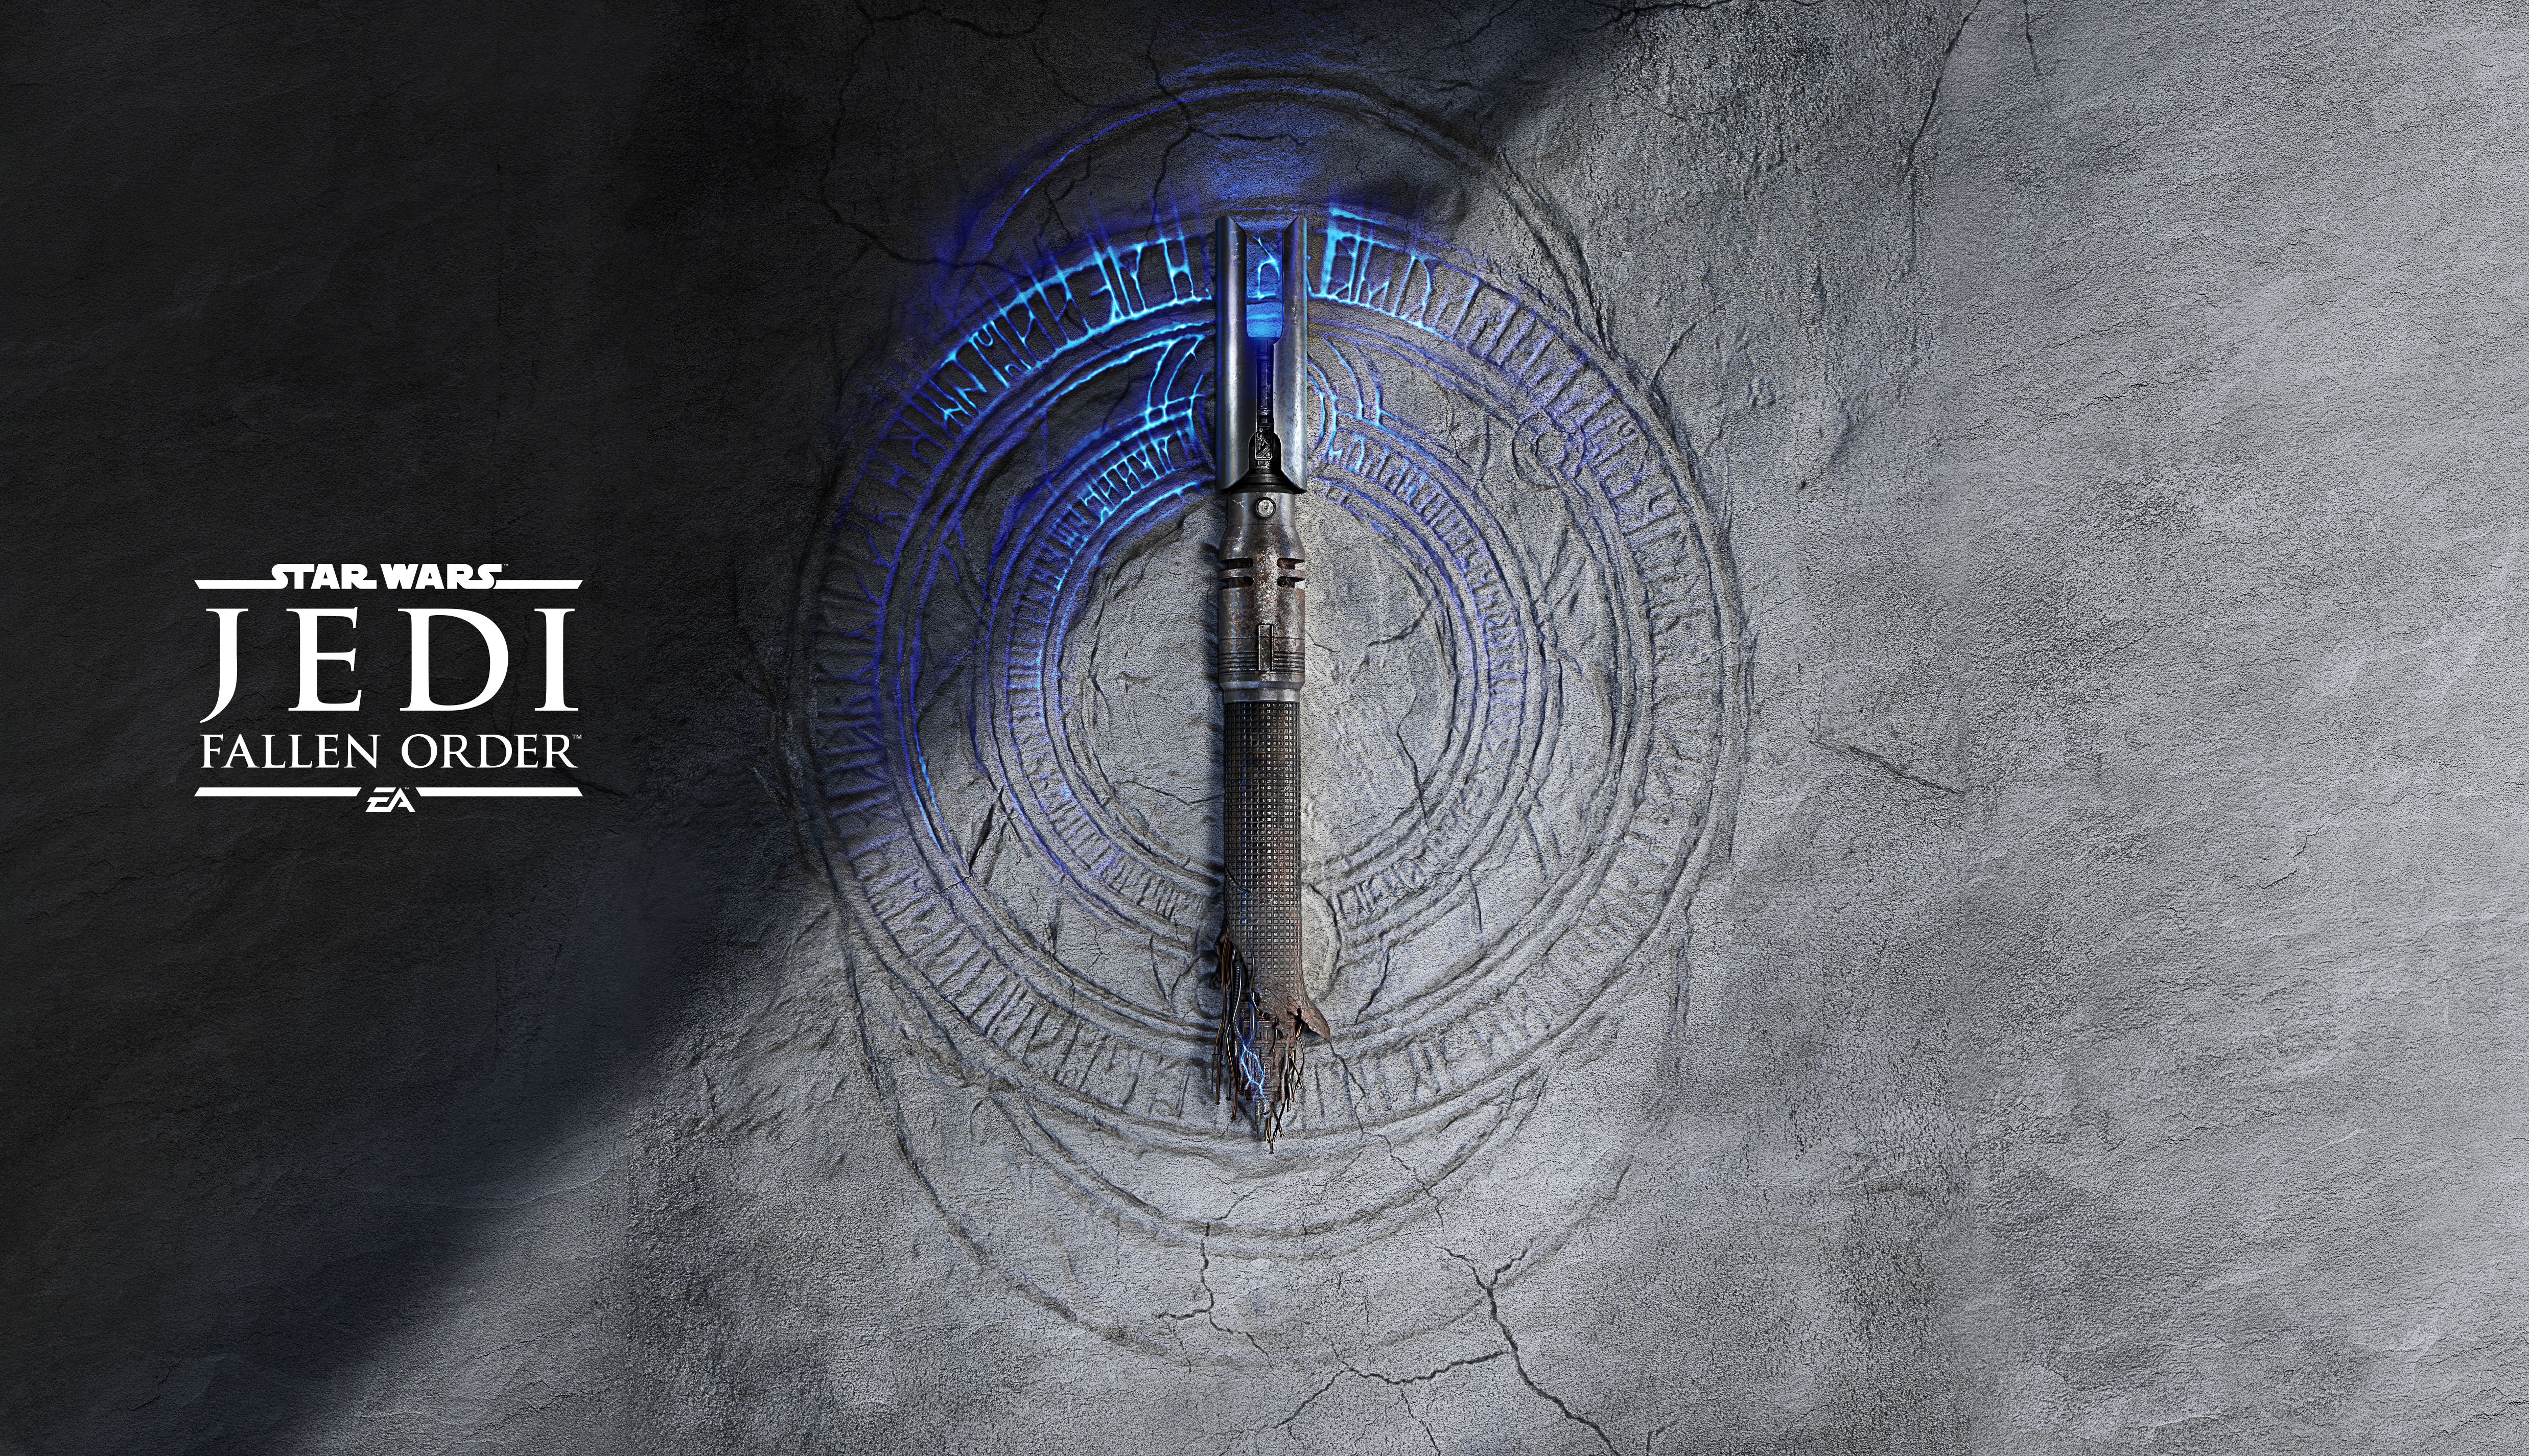 Ea And Respawn Announce Star Wars Jedi Fallen Order Will Launch November 15 2019 Business Wire